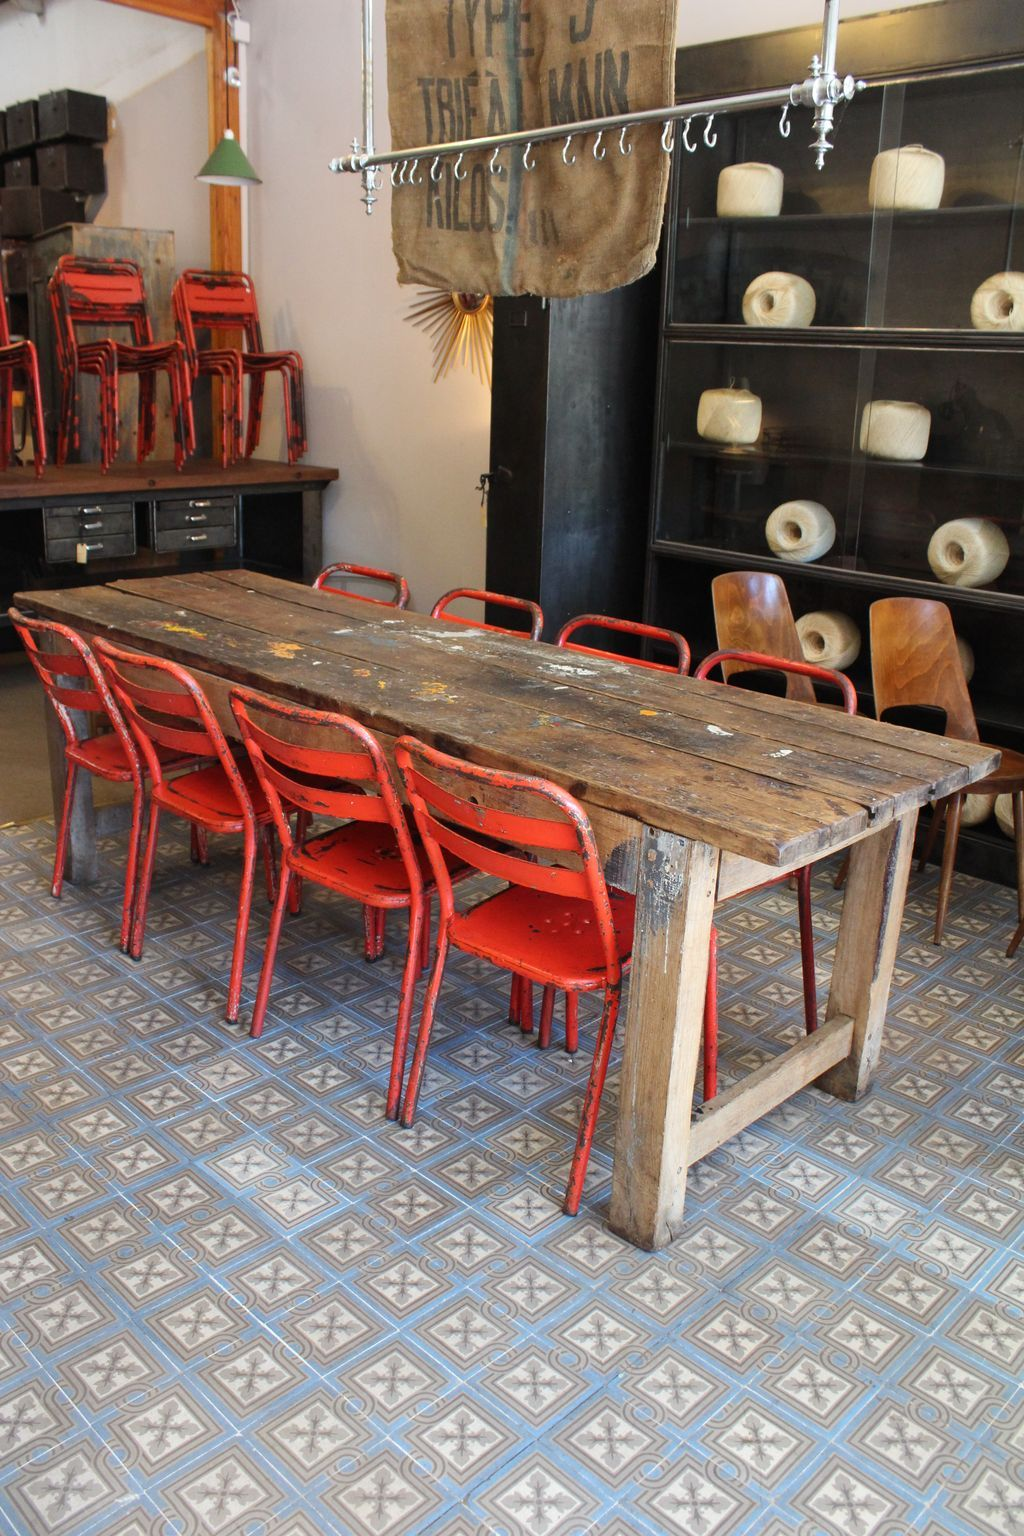 Mobilier Industriel Workshop Table Ma Petite Boutique Pinterest Chaises Peintes